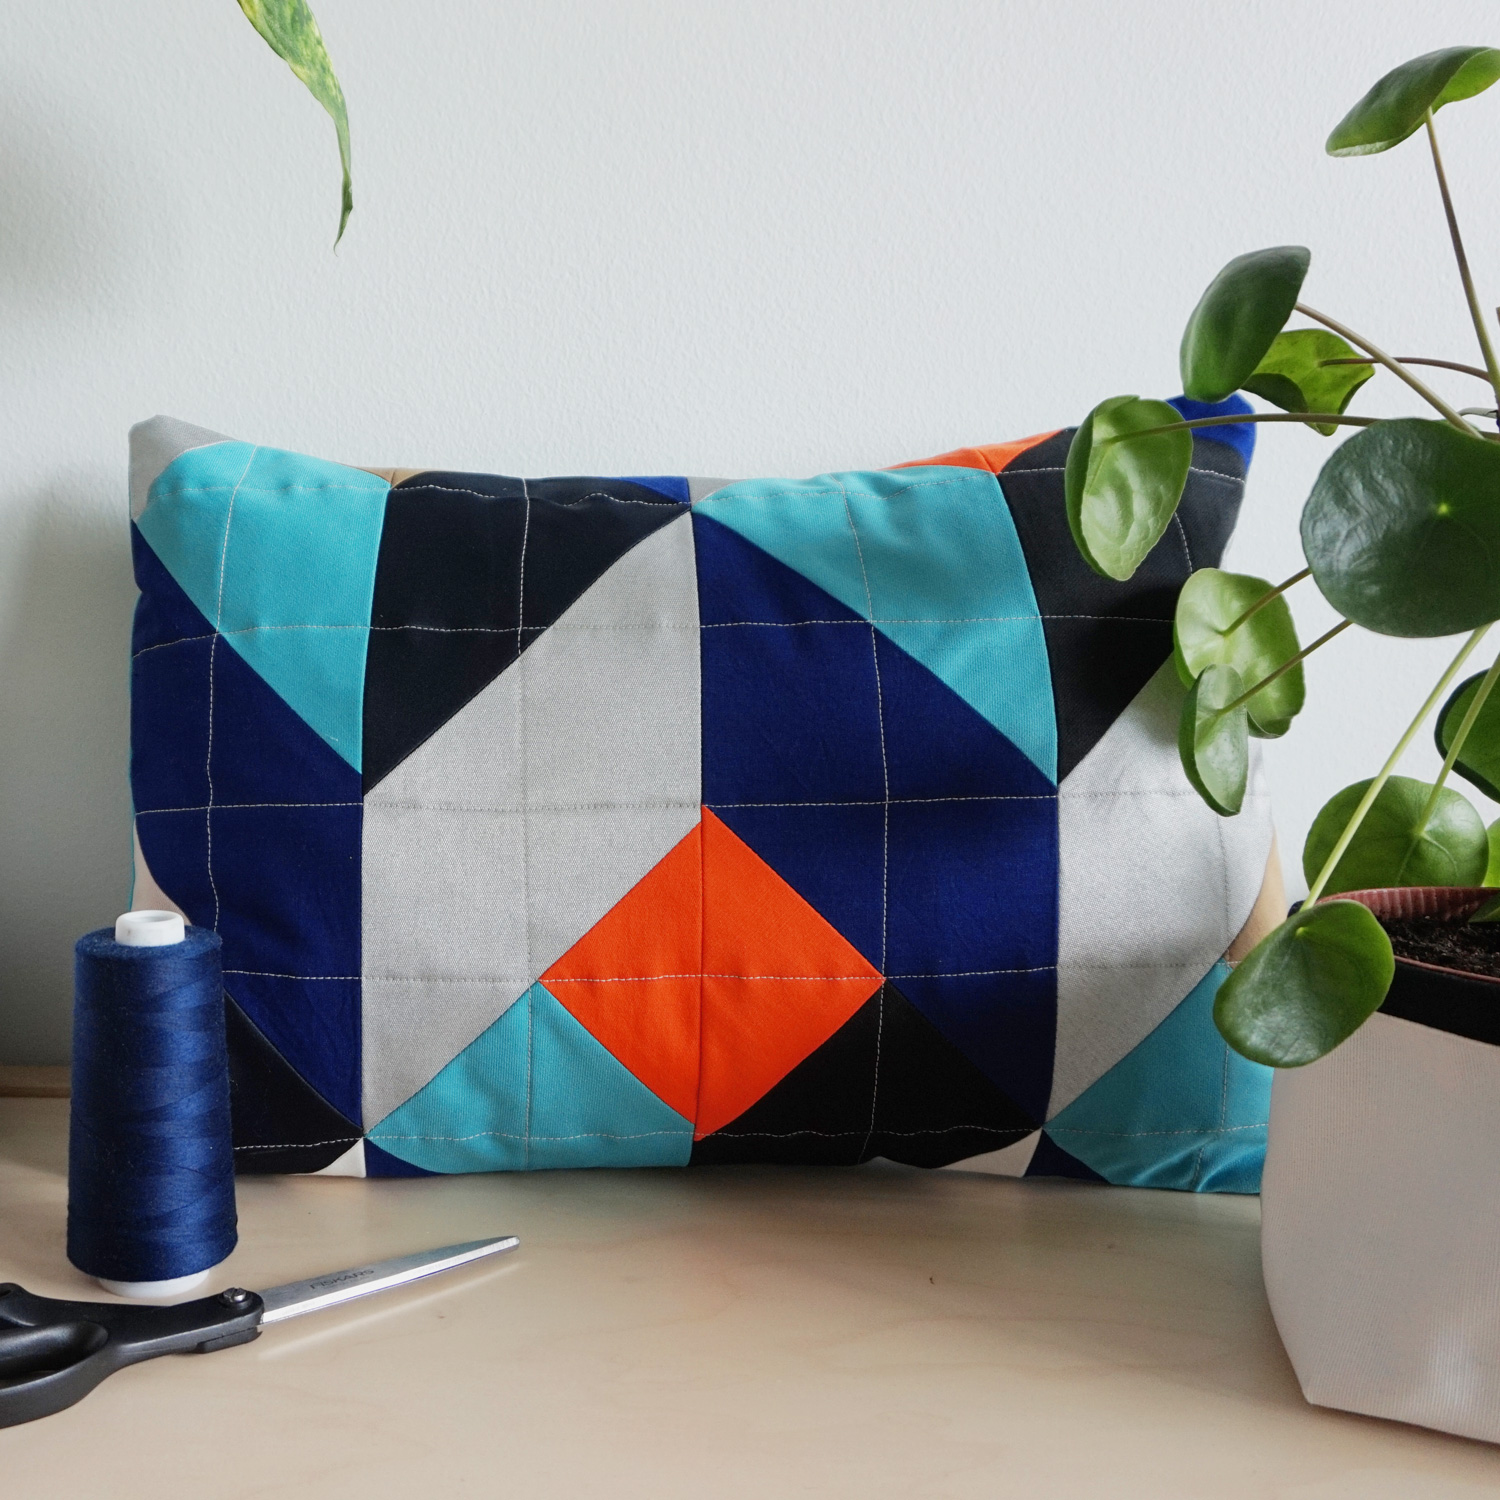 A bold geometric quilted pillow case, featuring a mind-bending 3D-pattern of stacking cubes.